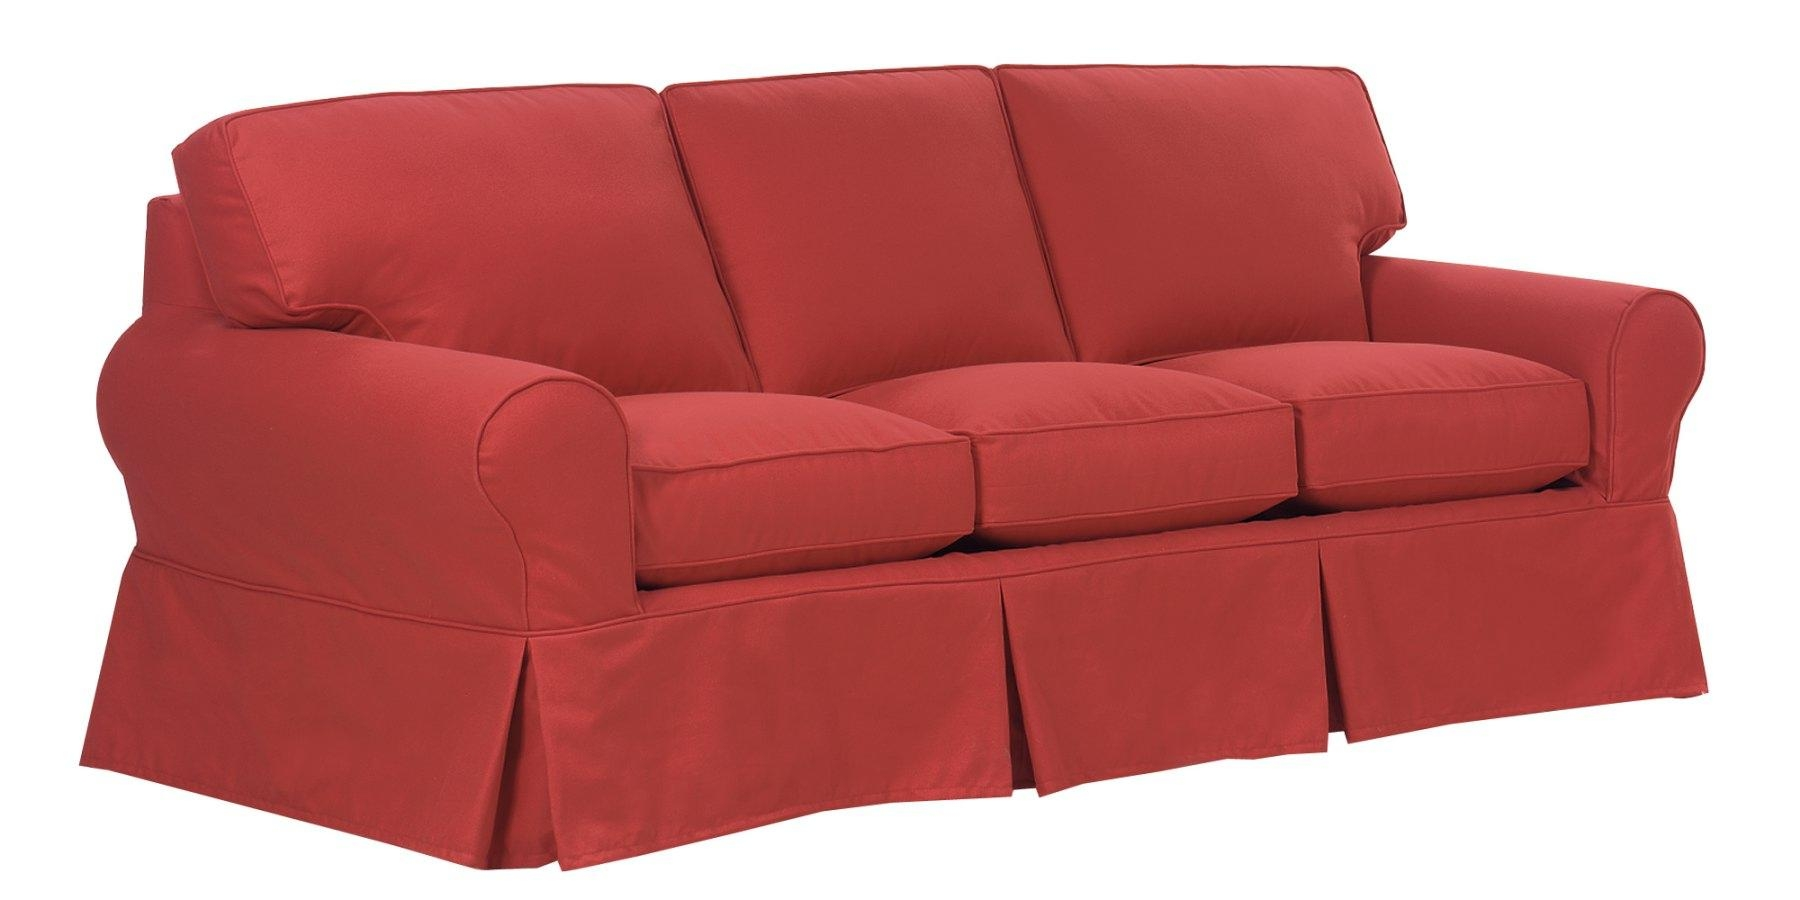 Featured Image of Sleeper Sofa Slipcovers